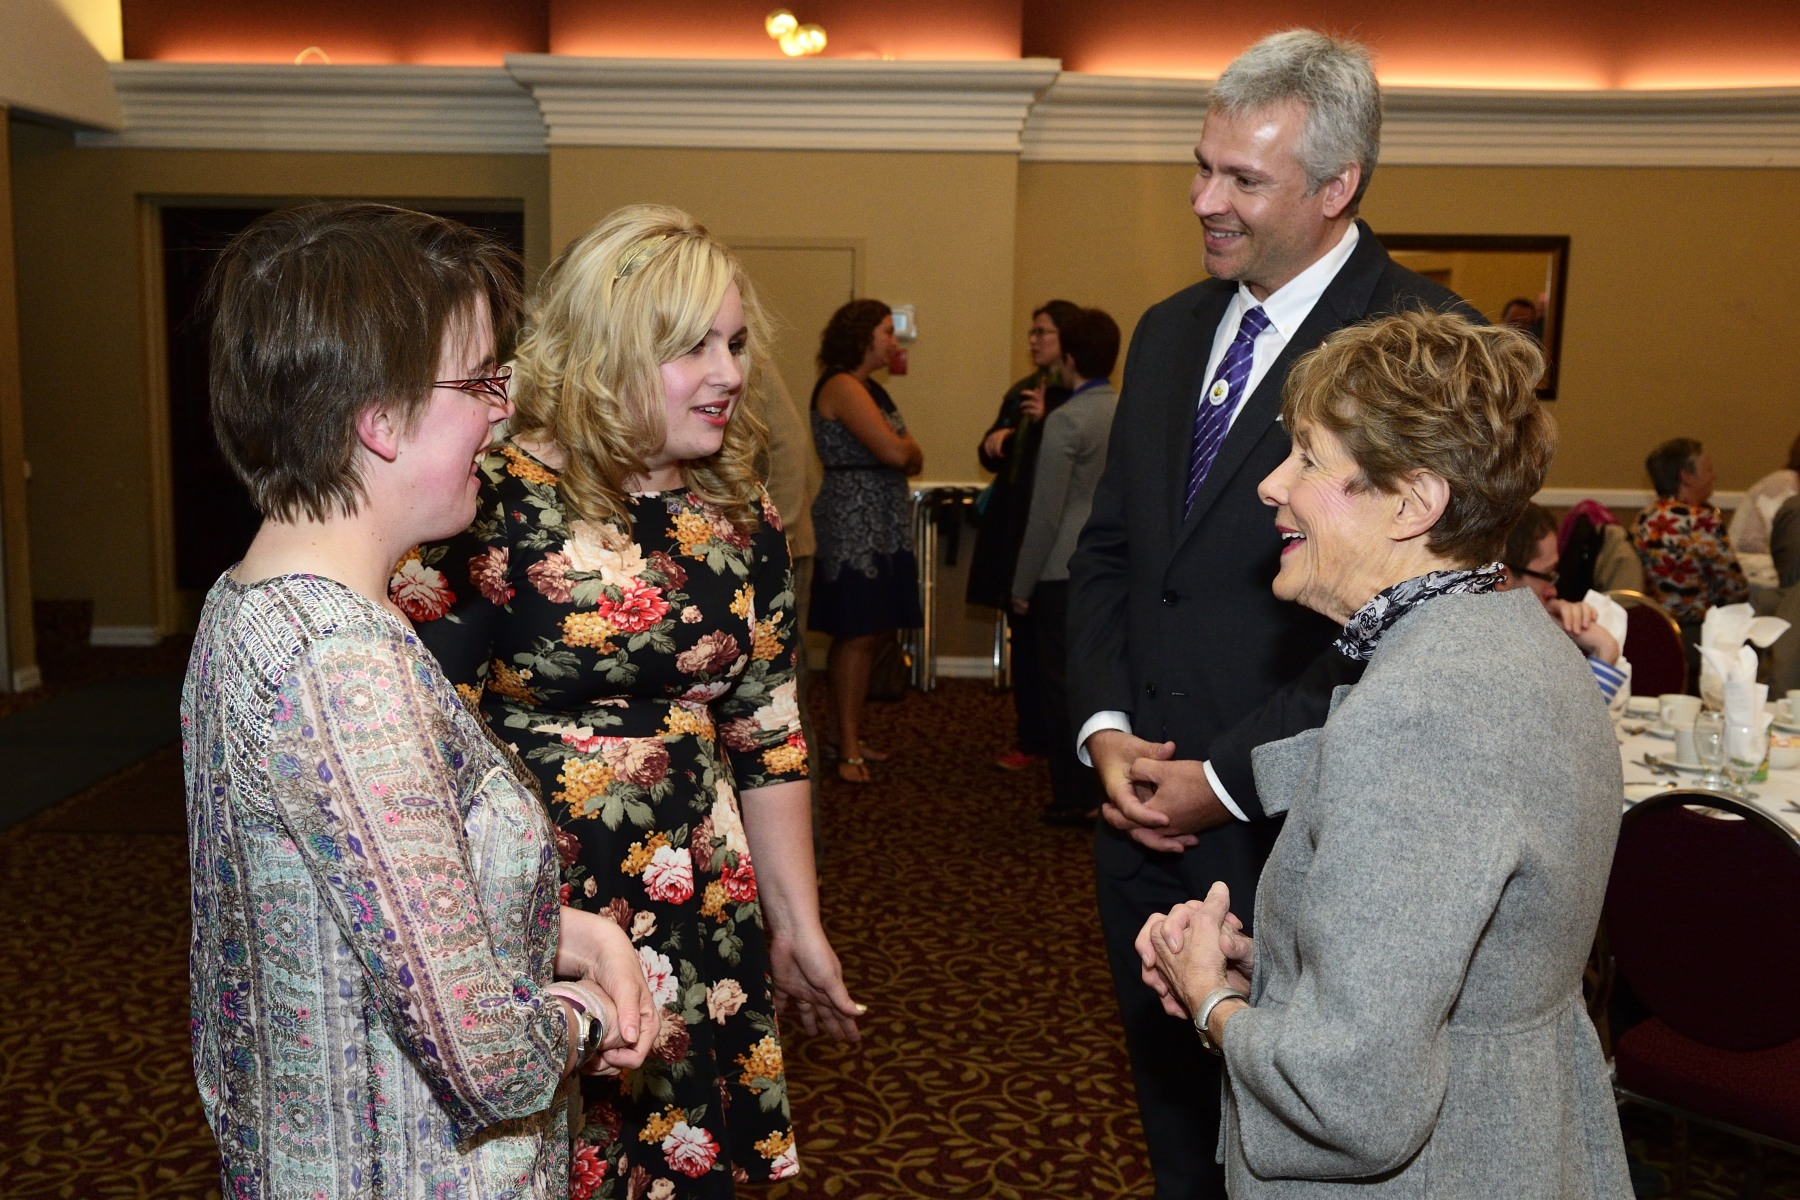 Her Excellency had the chance to talk with recipients of the Caring Canadian Award. All recipients  were linked to LiveWorkPlay, an Ottawa-based charitable organization that helps the community welcome people with intellectual disabilities to live, work and play as valued citizens.